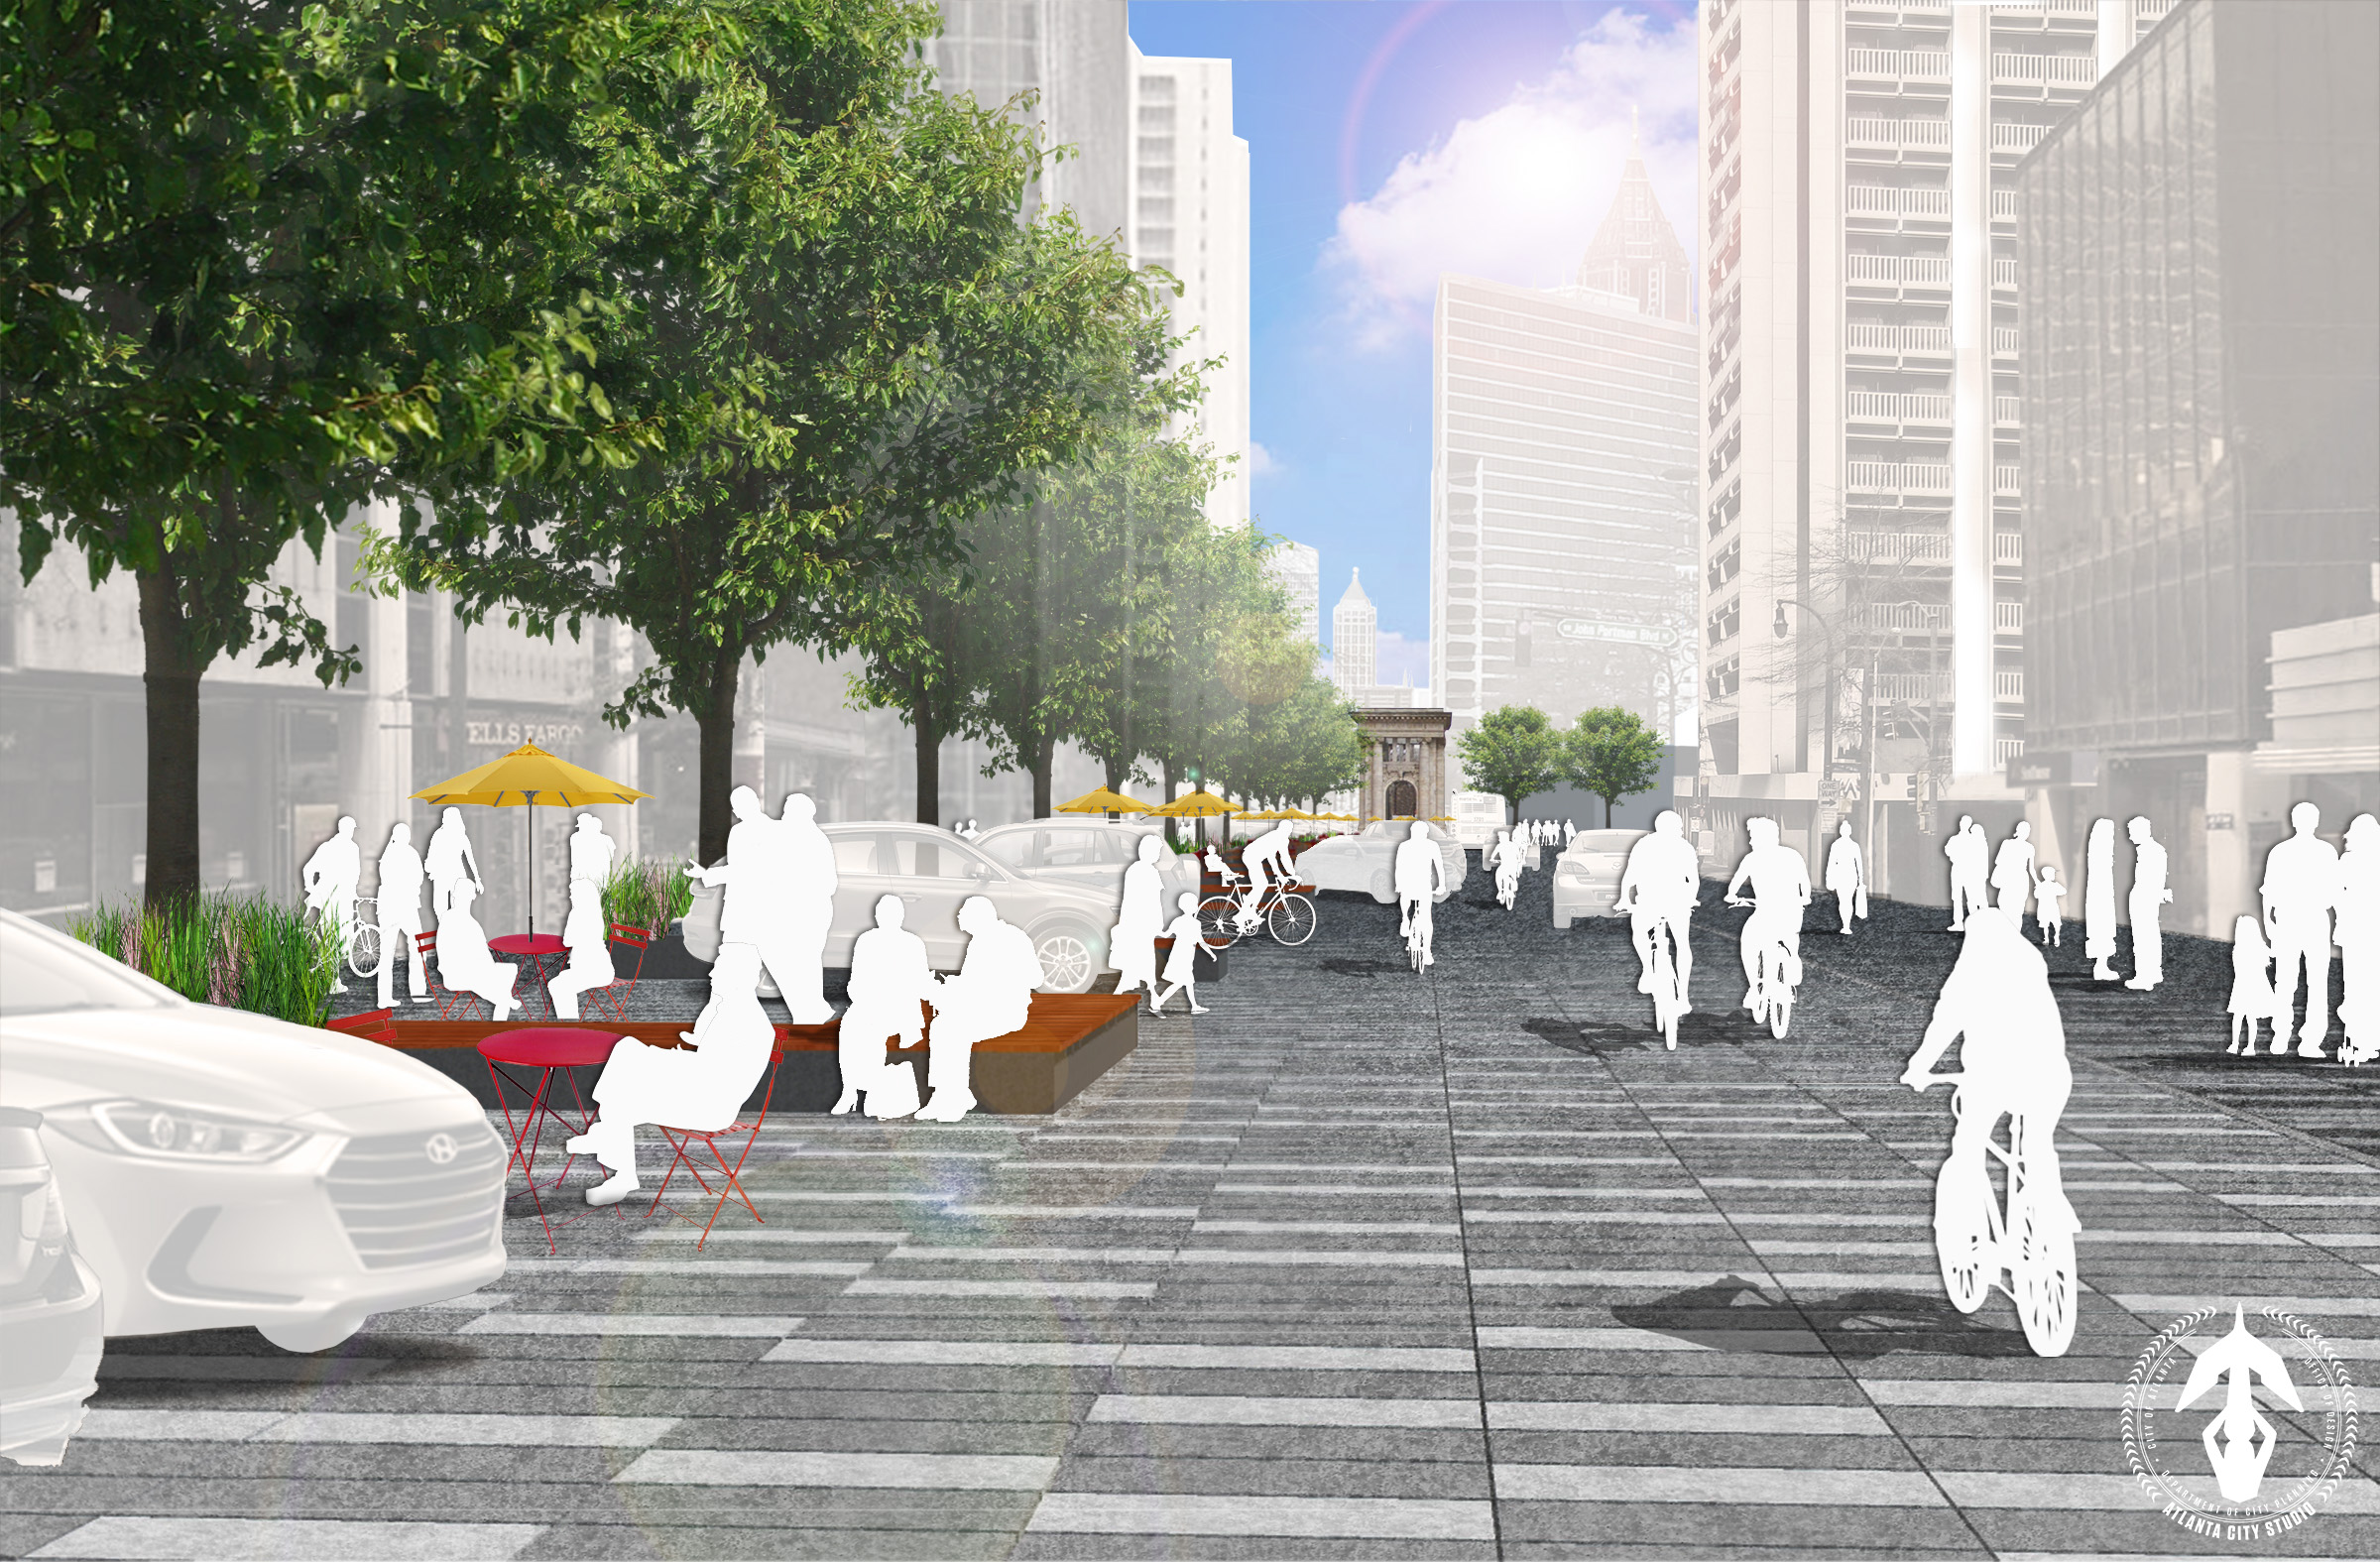 Proposed design looking towards Hardy Ivy Park